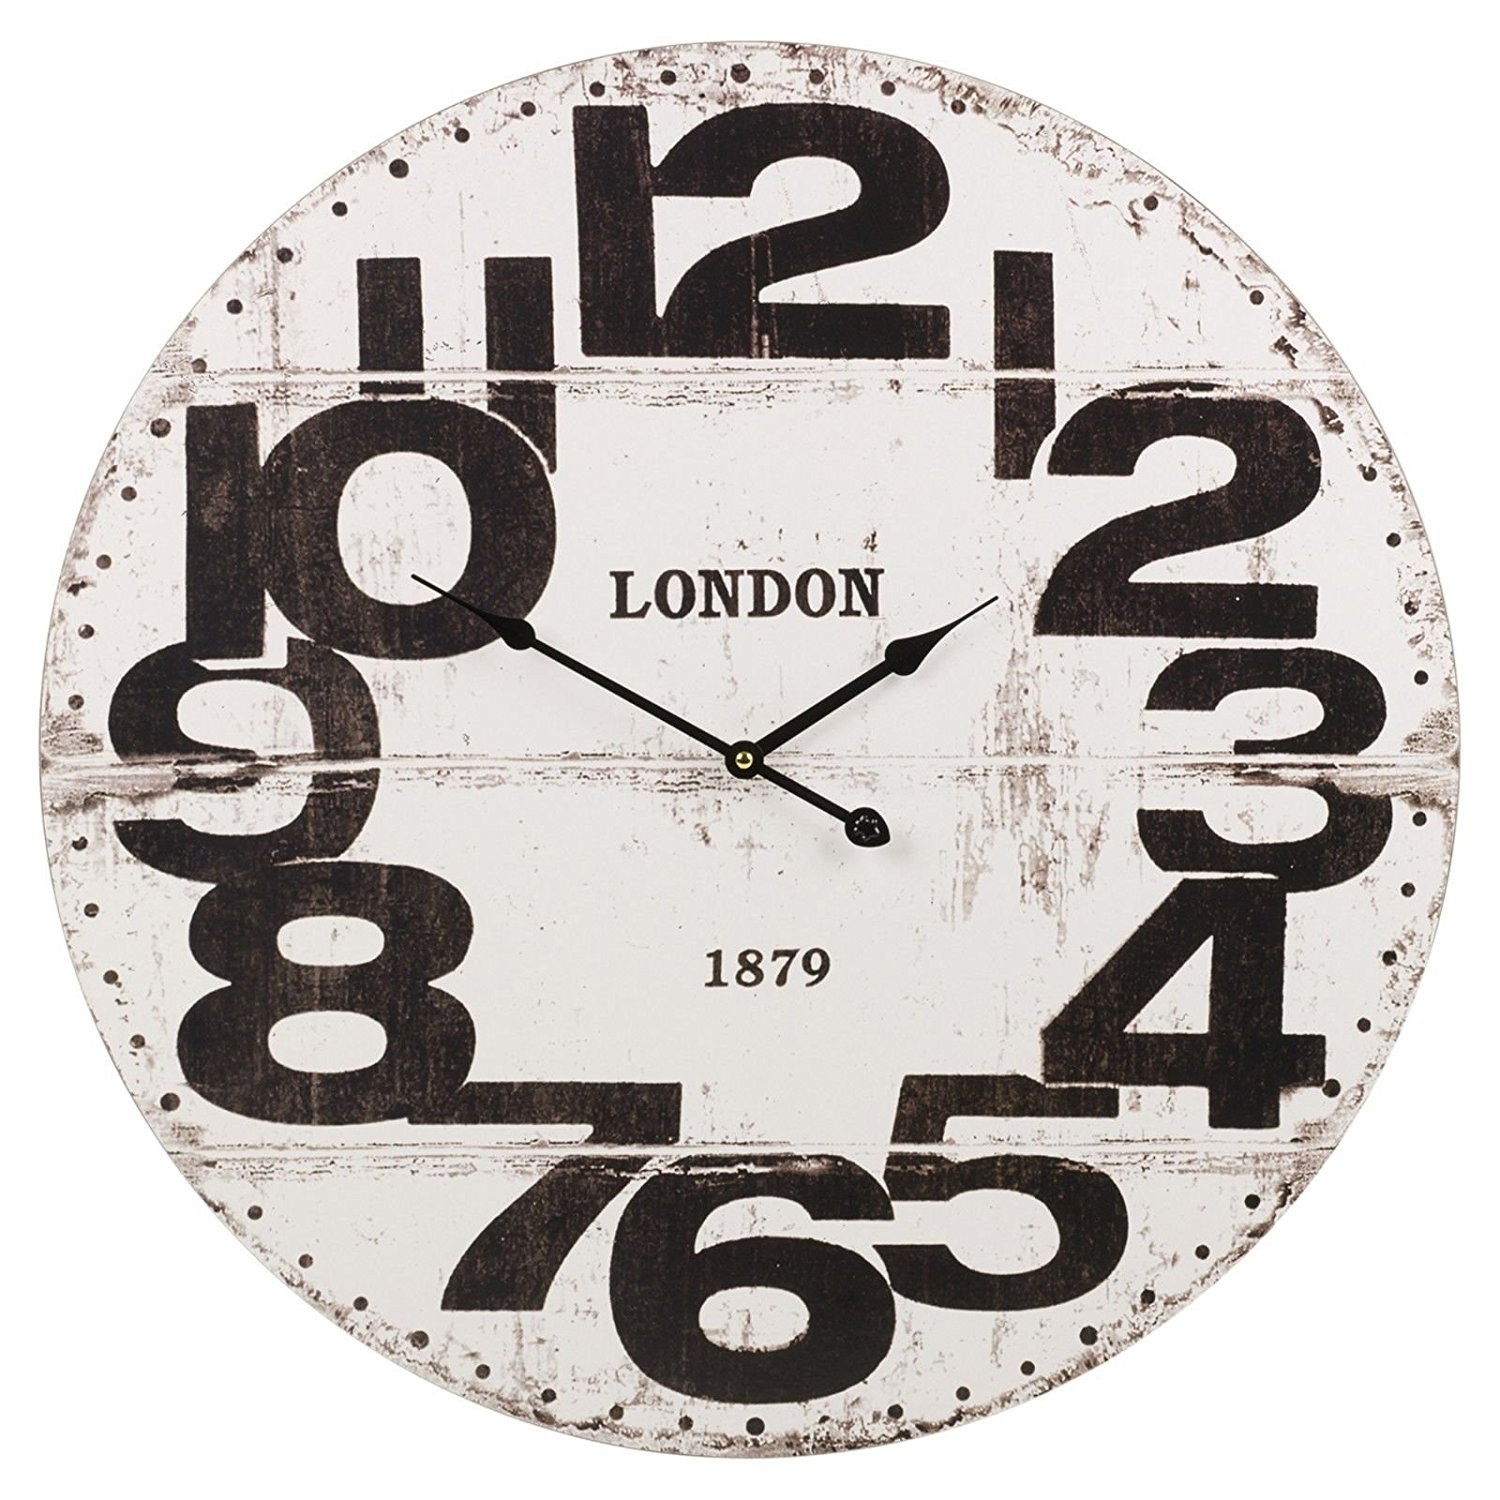 Easygift Products Large Wood Vintage Wall Clock Round 24'' Big Display (White)